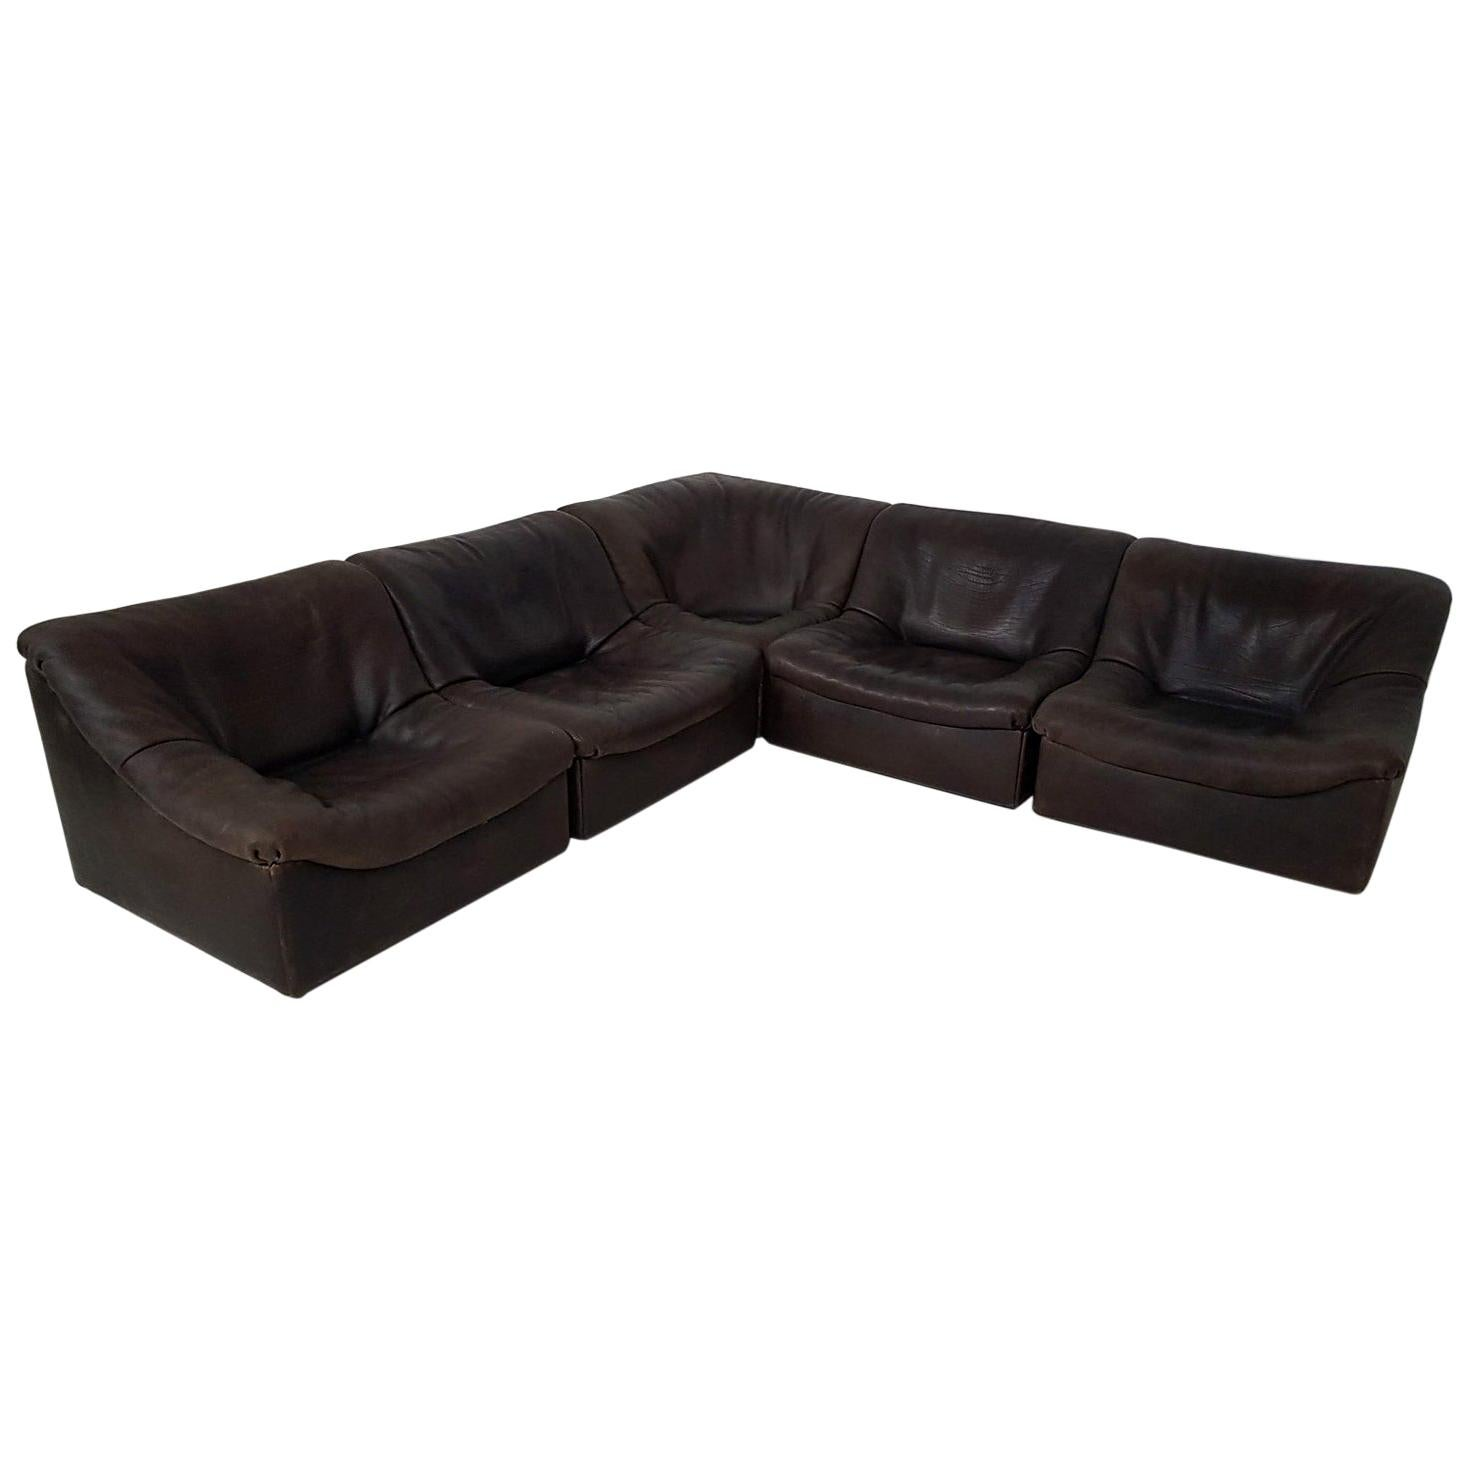 "Dark Brown Neck Leather Modular ""DS46"" Sofa by De Sede, Switzerland, 1970s"